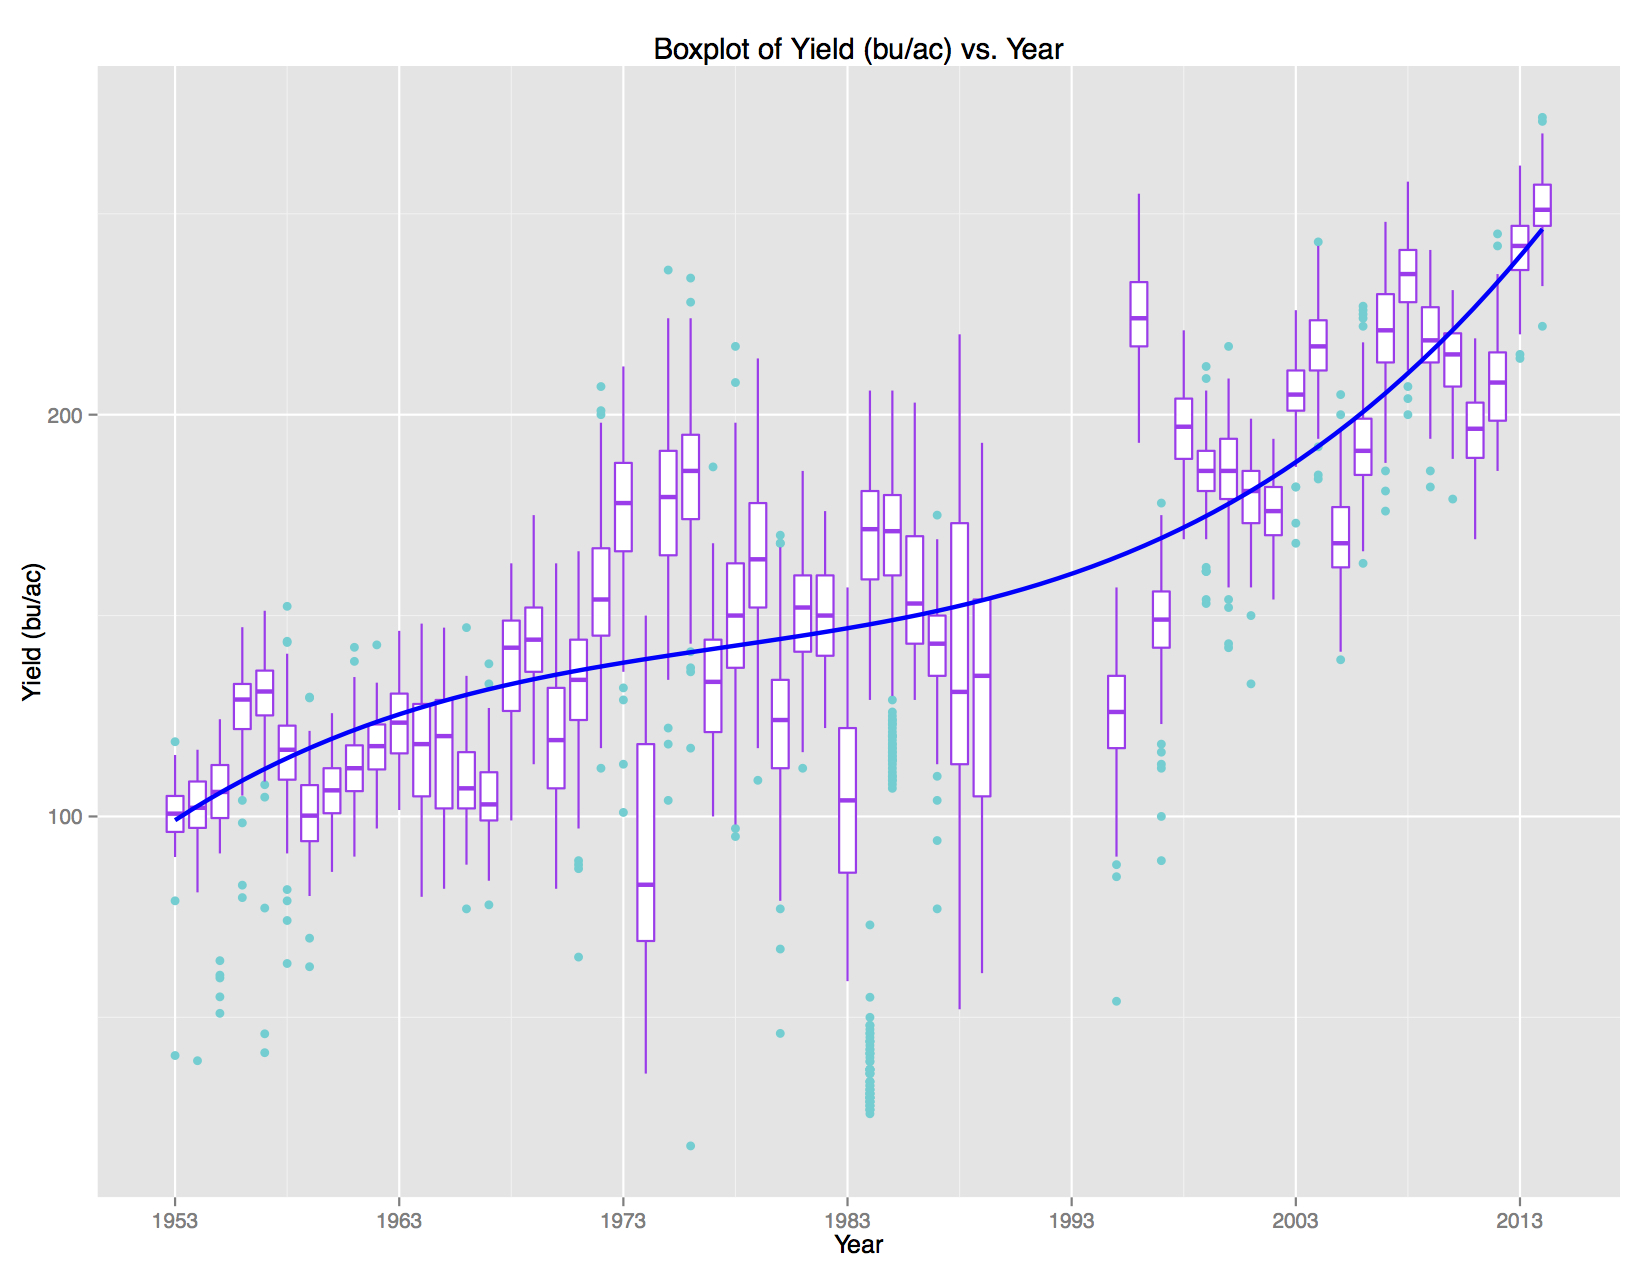 This graph shows corn yield in bushels per acre at fields near Urbana plotted against year. Each box plot shows the spread of the yield in a given year, with outliers labeled. Overplotted is a cubic line that is representative of the overall Urbana yield vs. year trend.